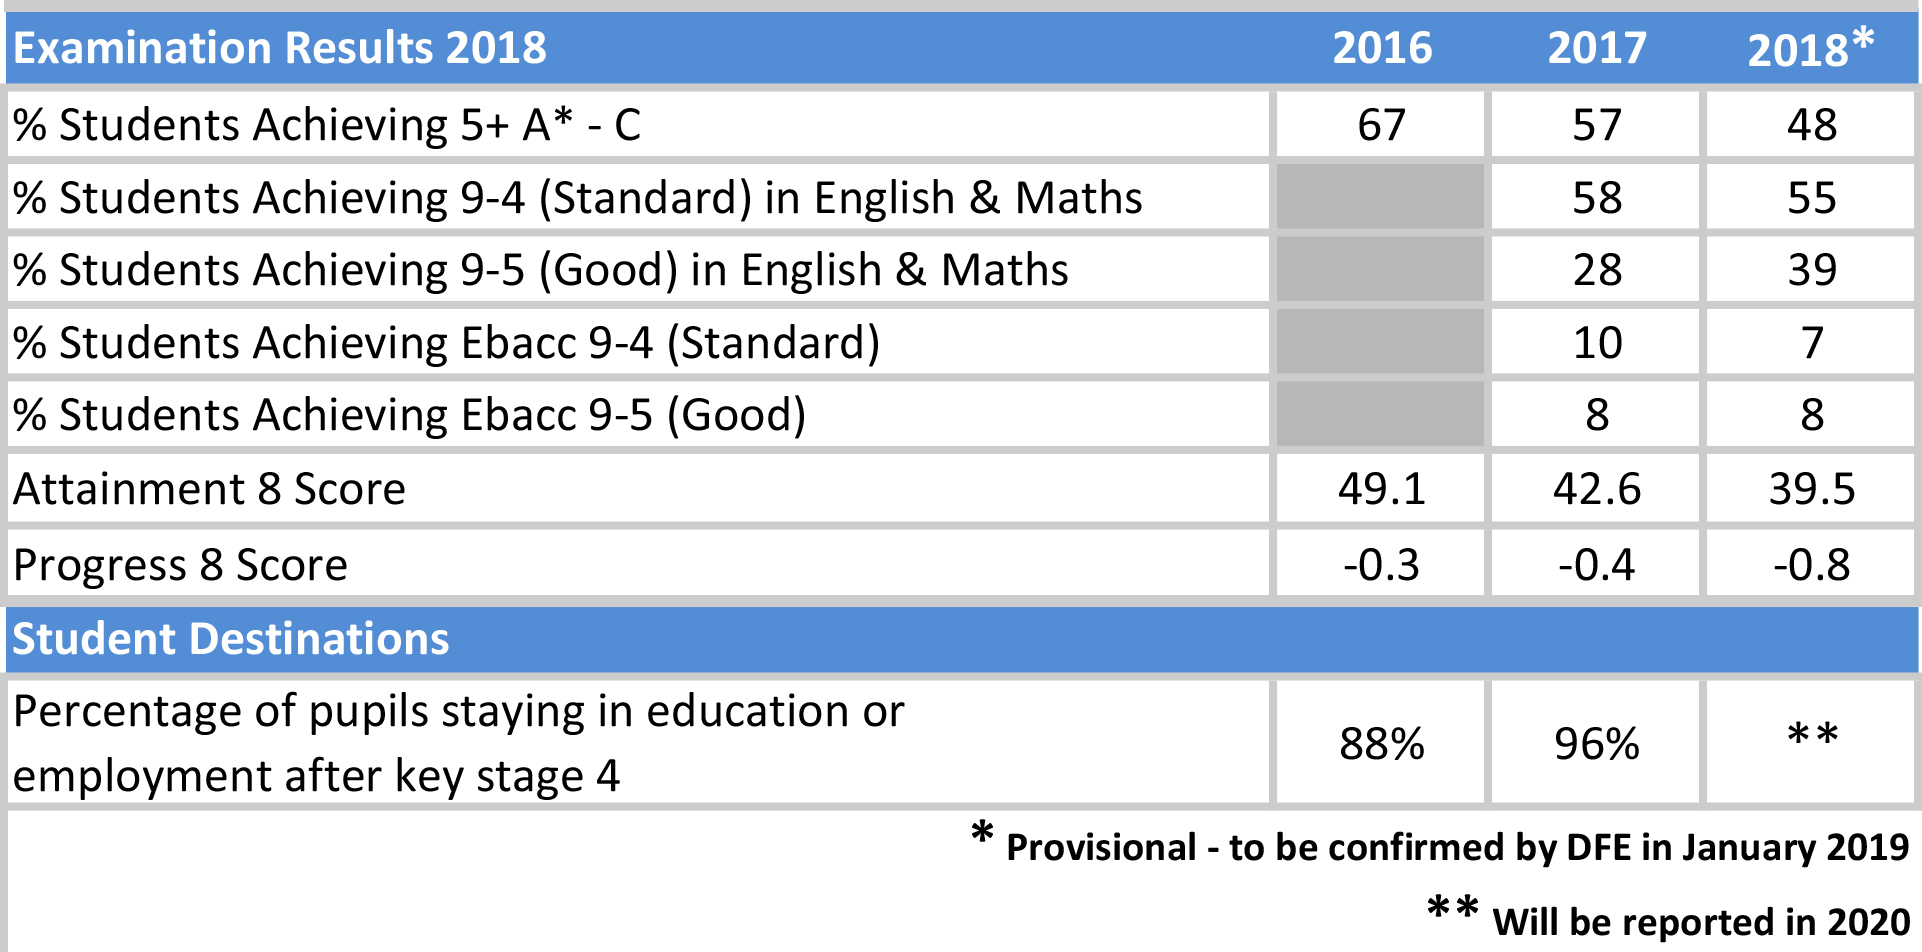 Examinations Results Summary 2016 2018v2